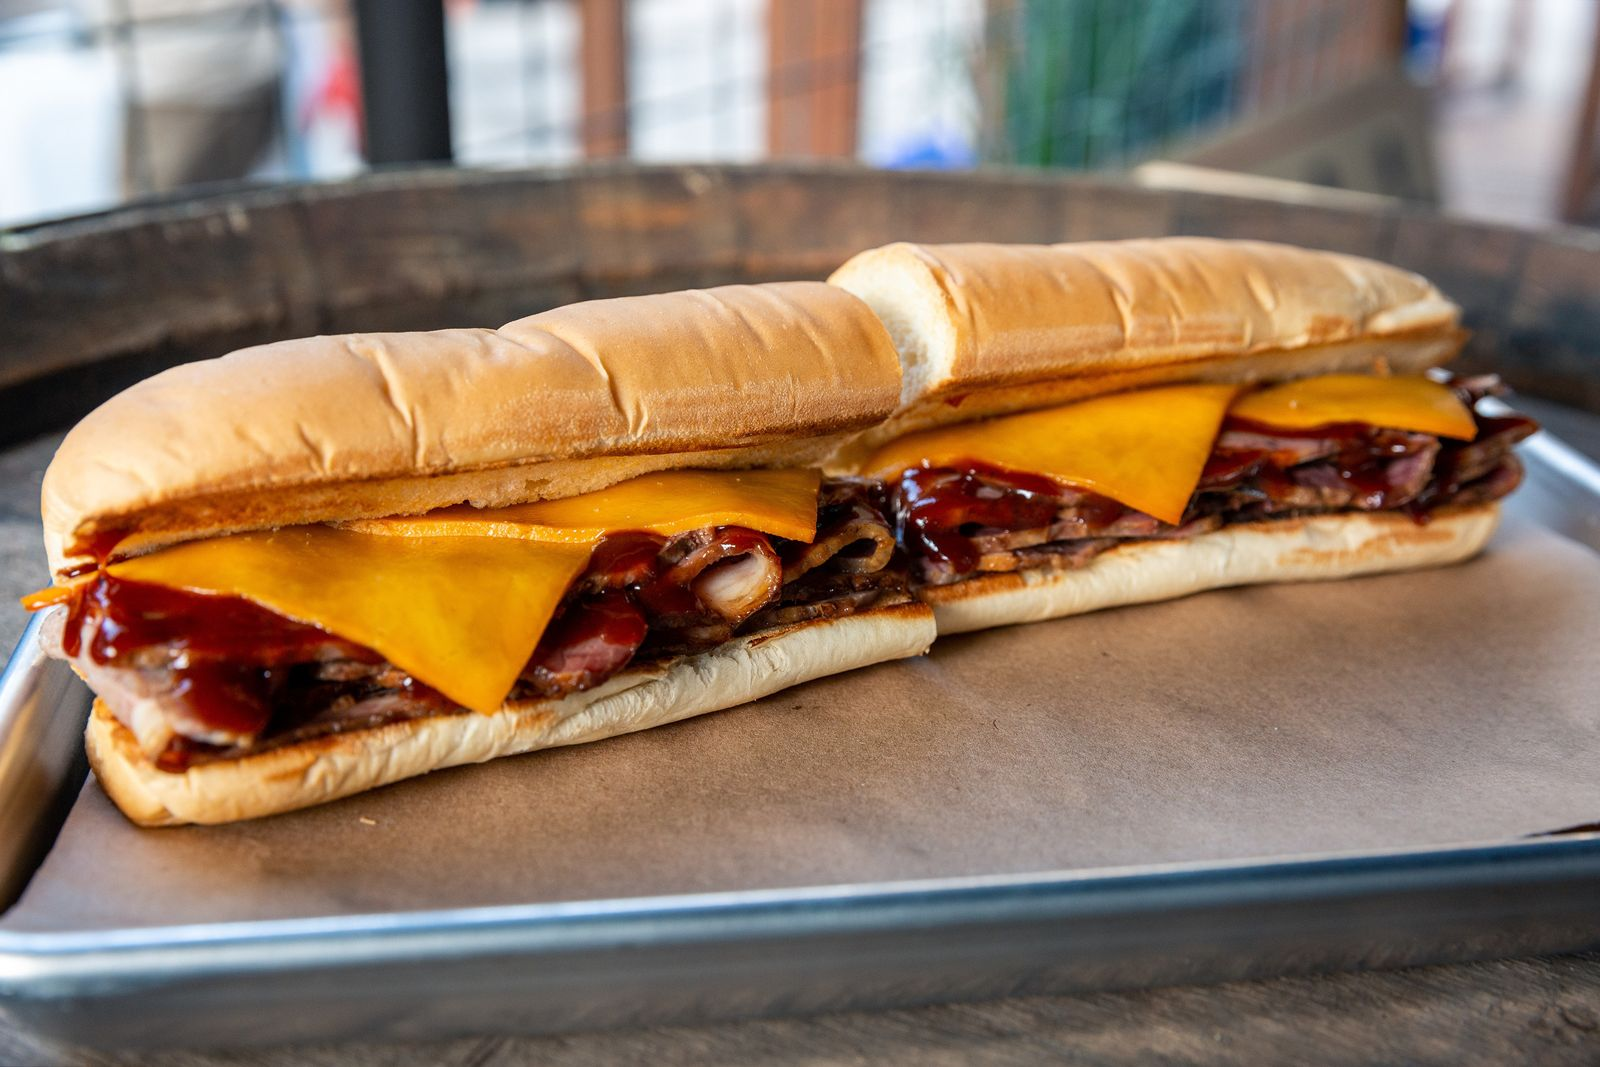 Subway Restaurants Launch Latest Mouth-Watering, Culinary Innovation with NEW! Naturally Pit-Smoked Brisket Sandwich